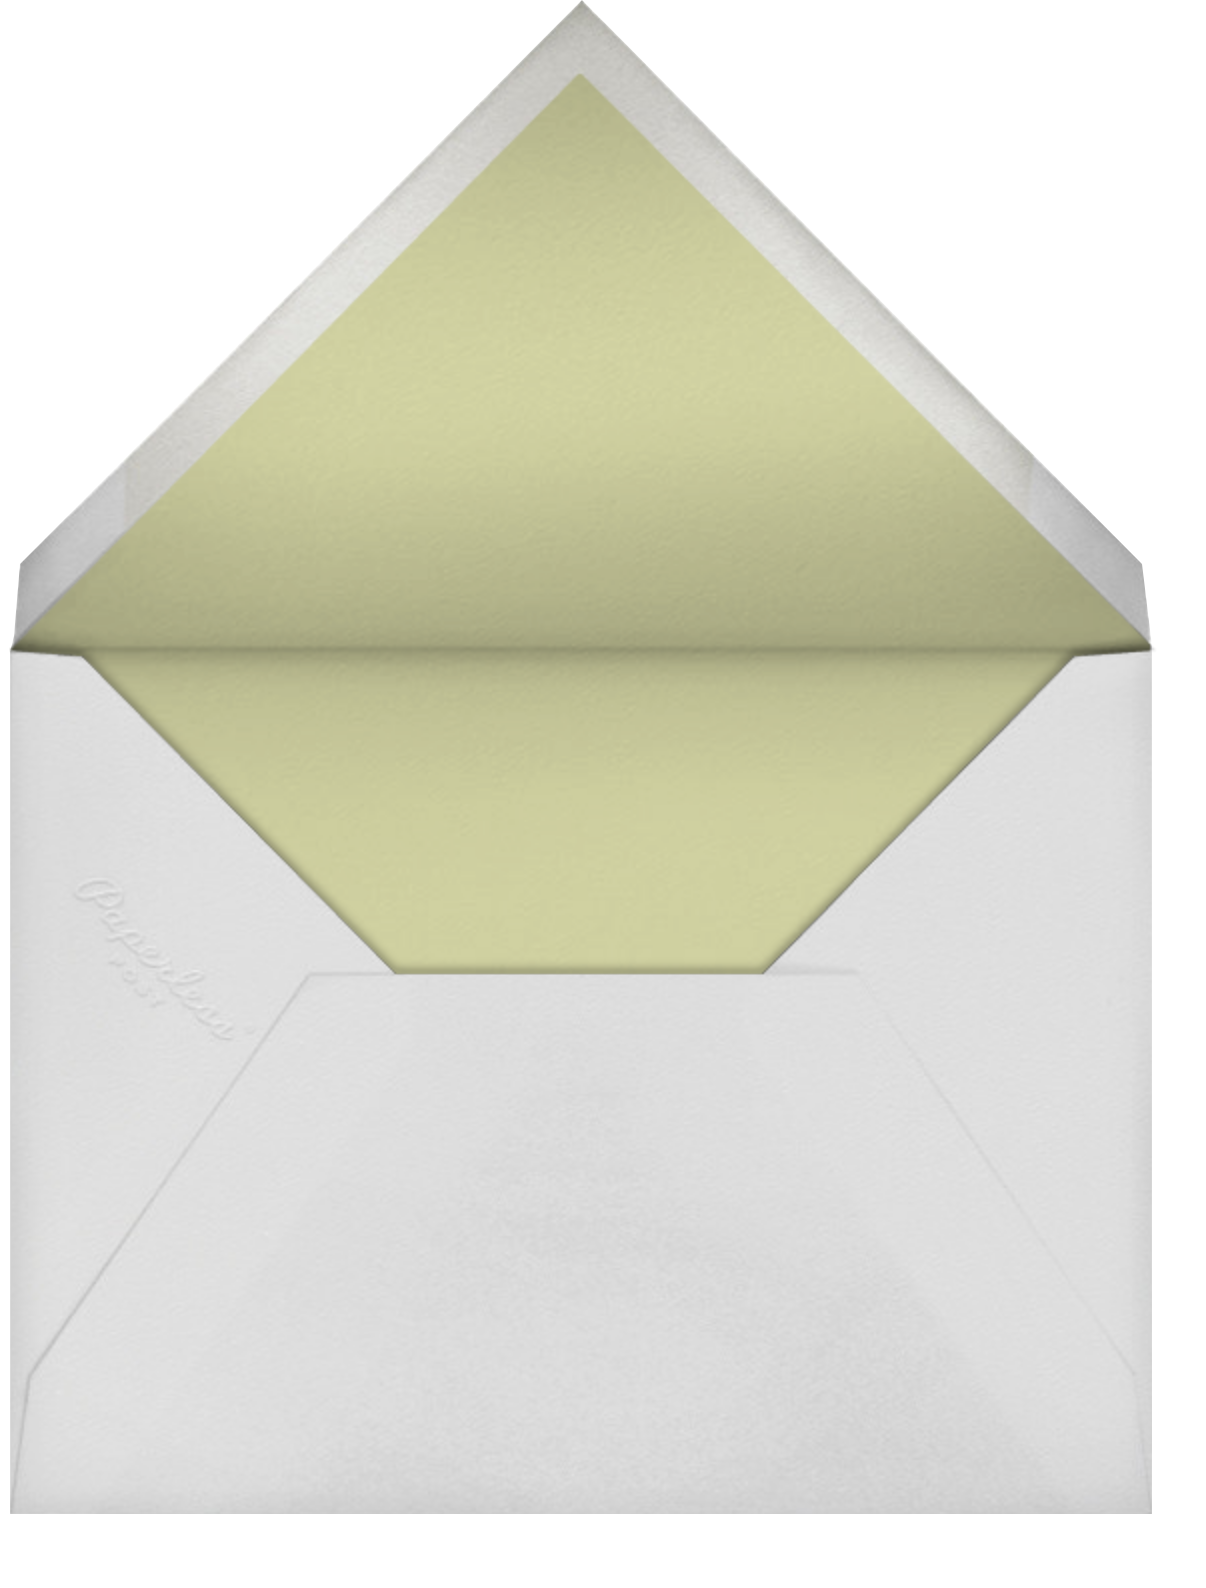 Wilcox - Celery - Paperless Post - Anniversary party - envelope back